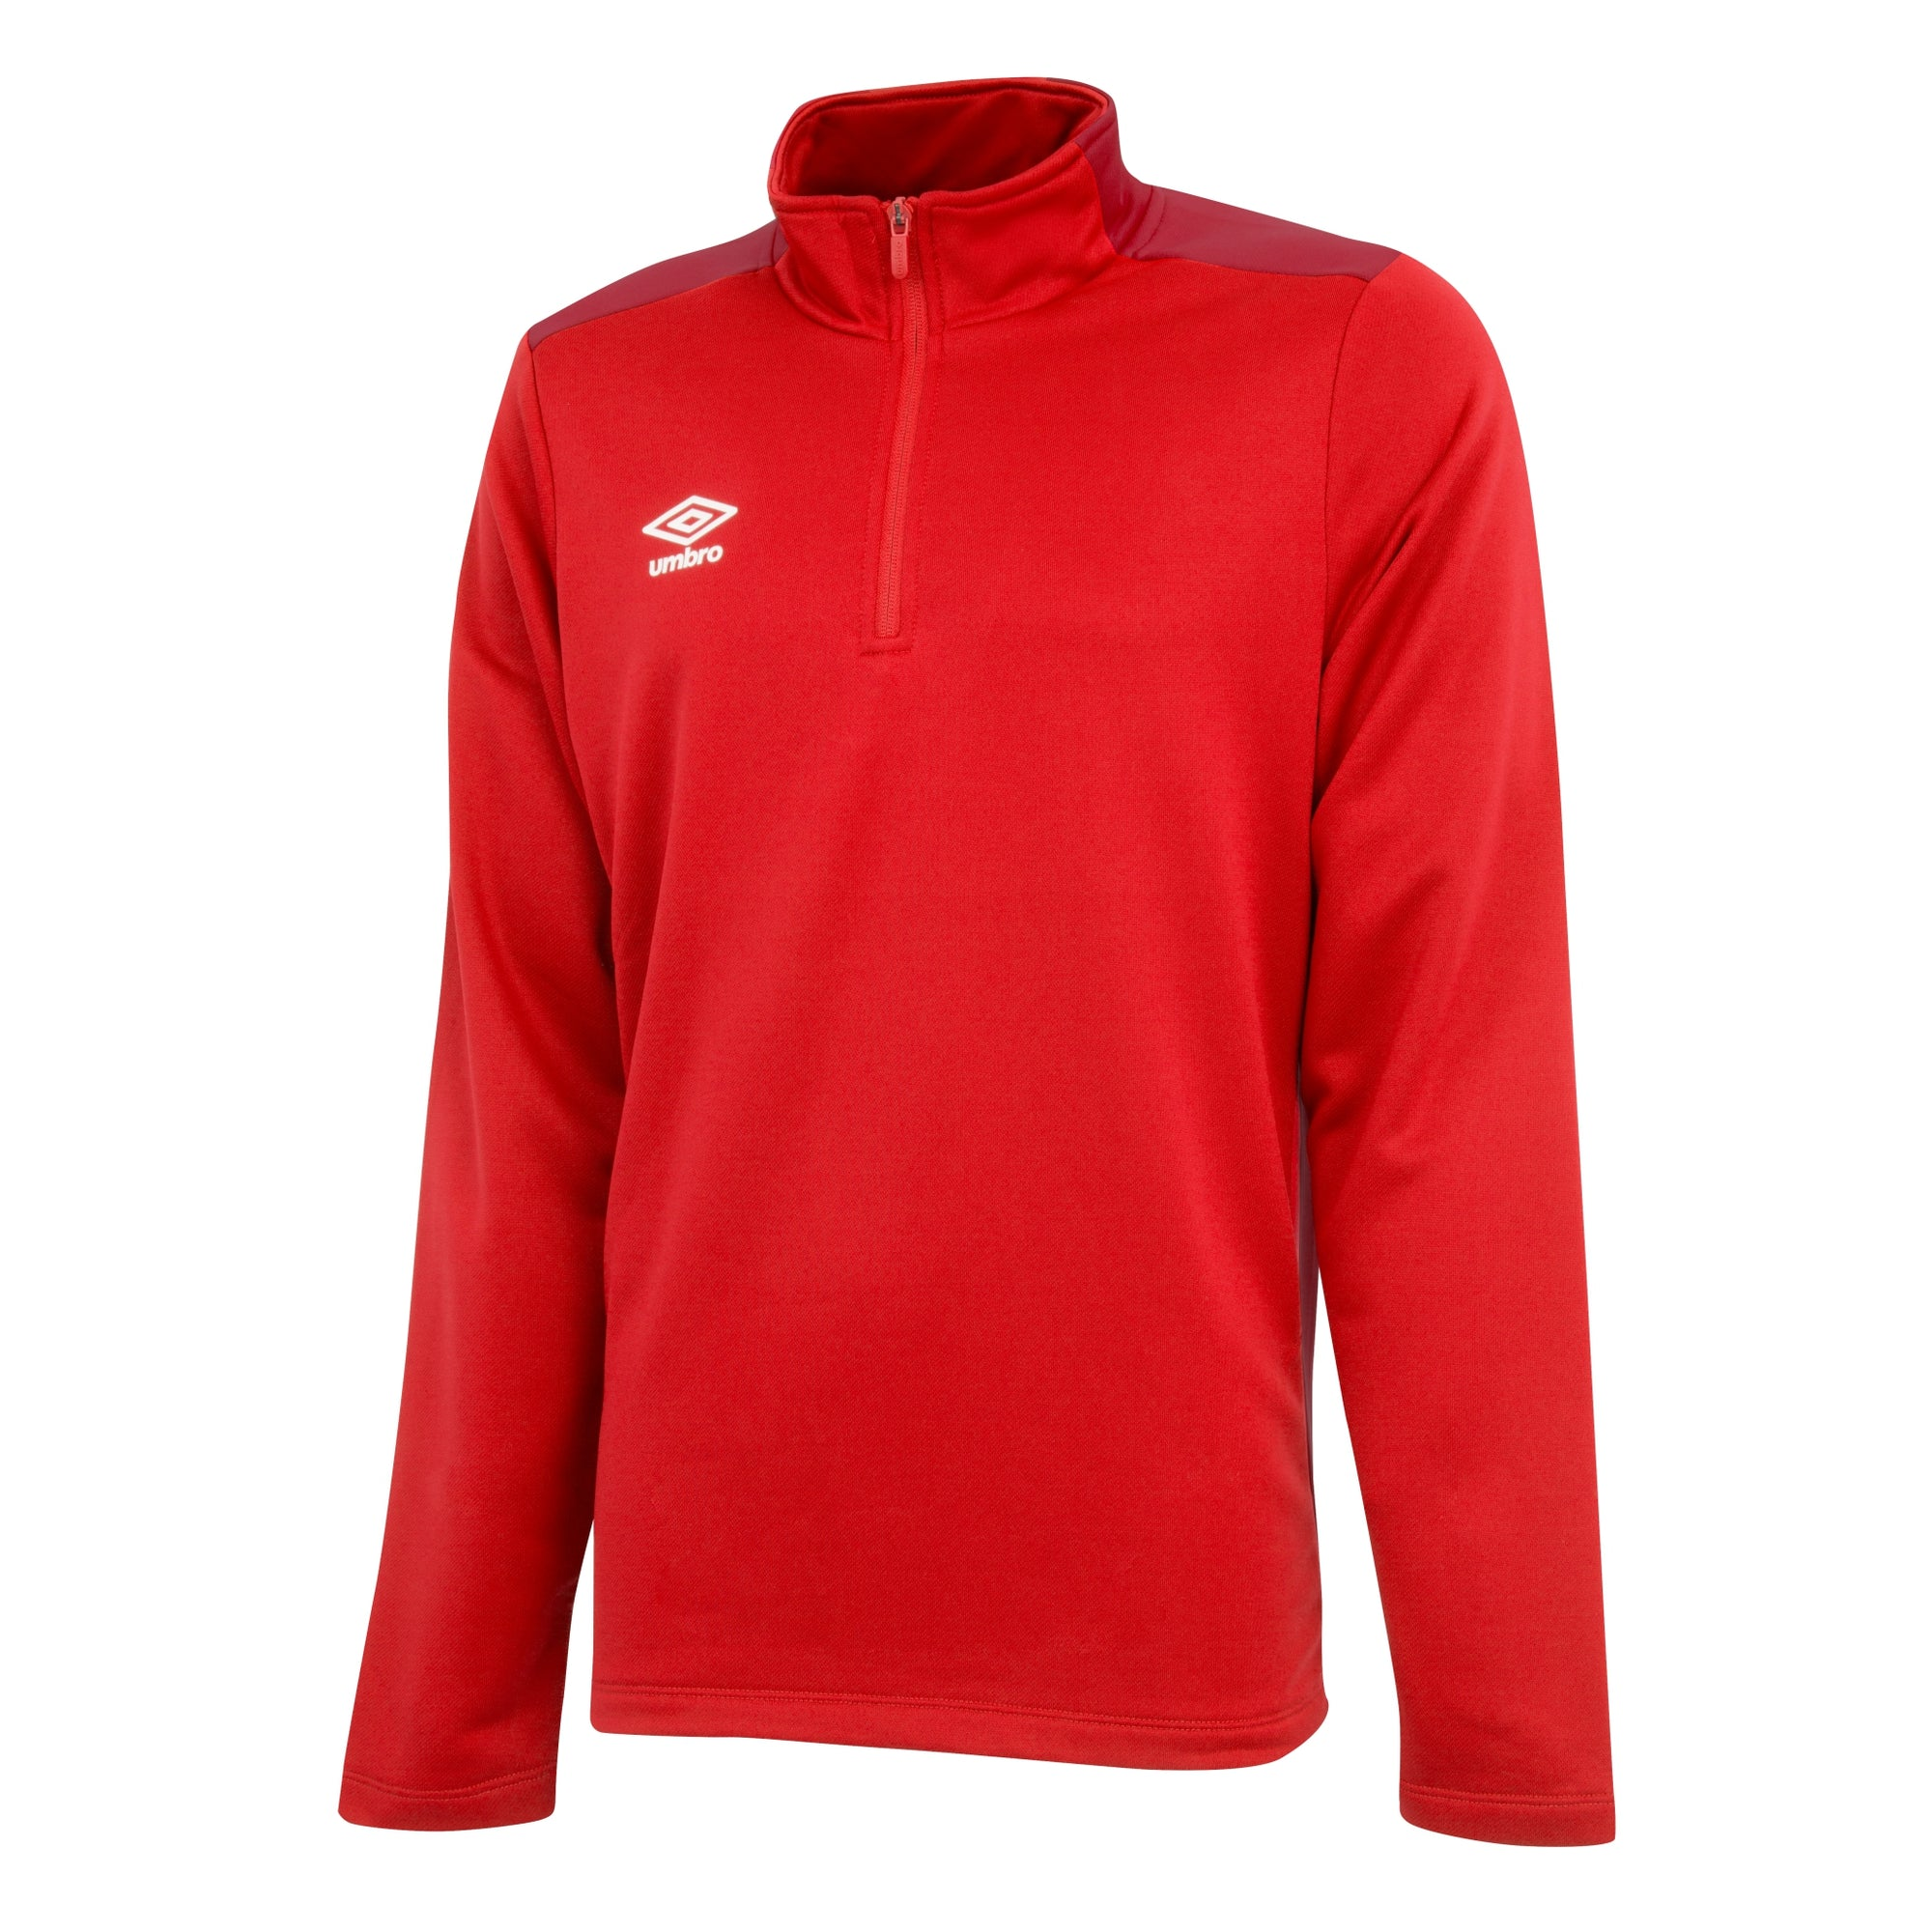 Umbro 1/2 zip top in vermillion/jester red.